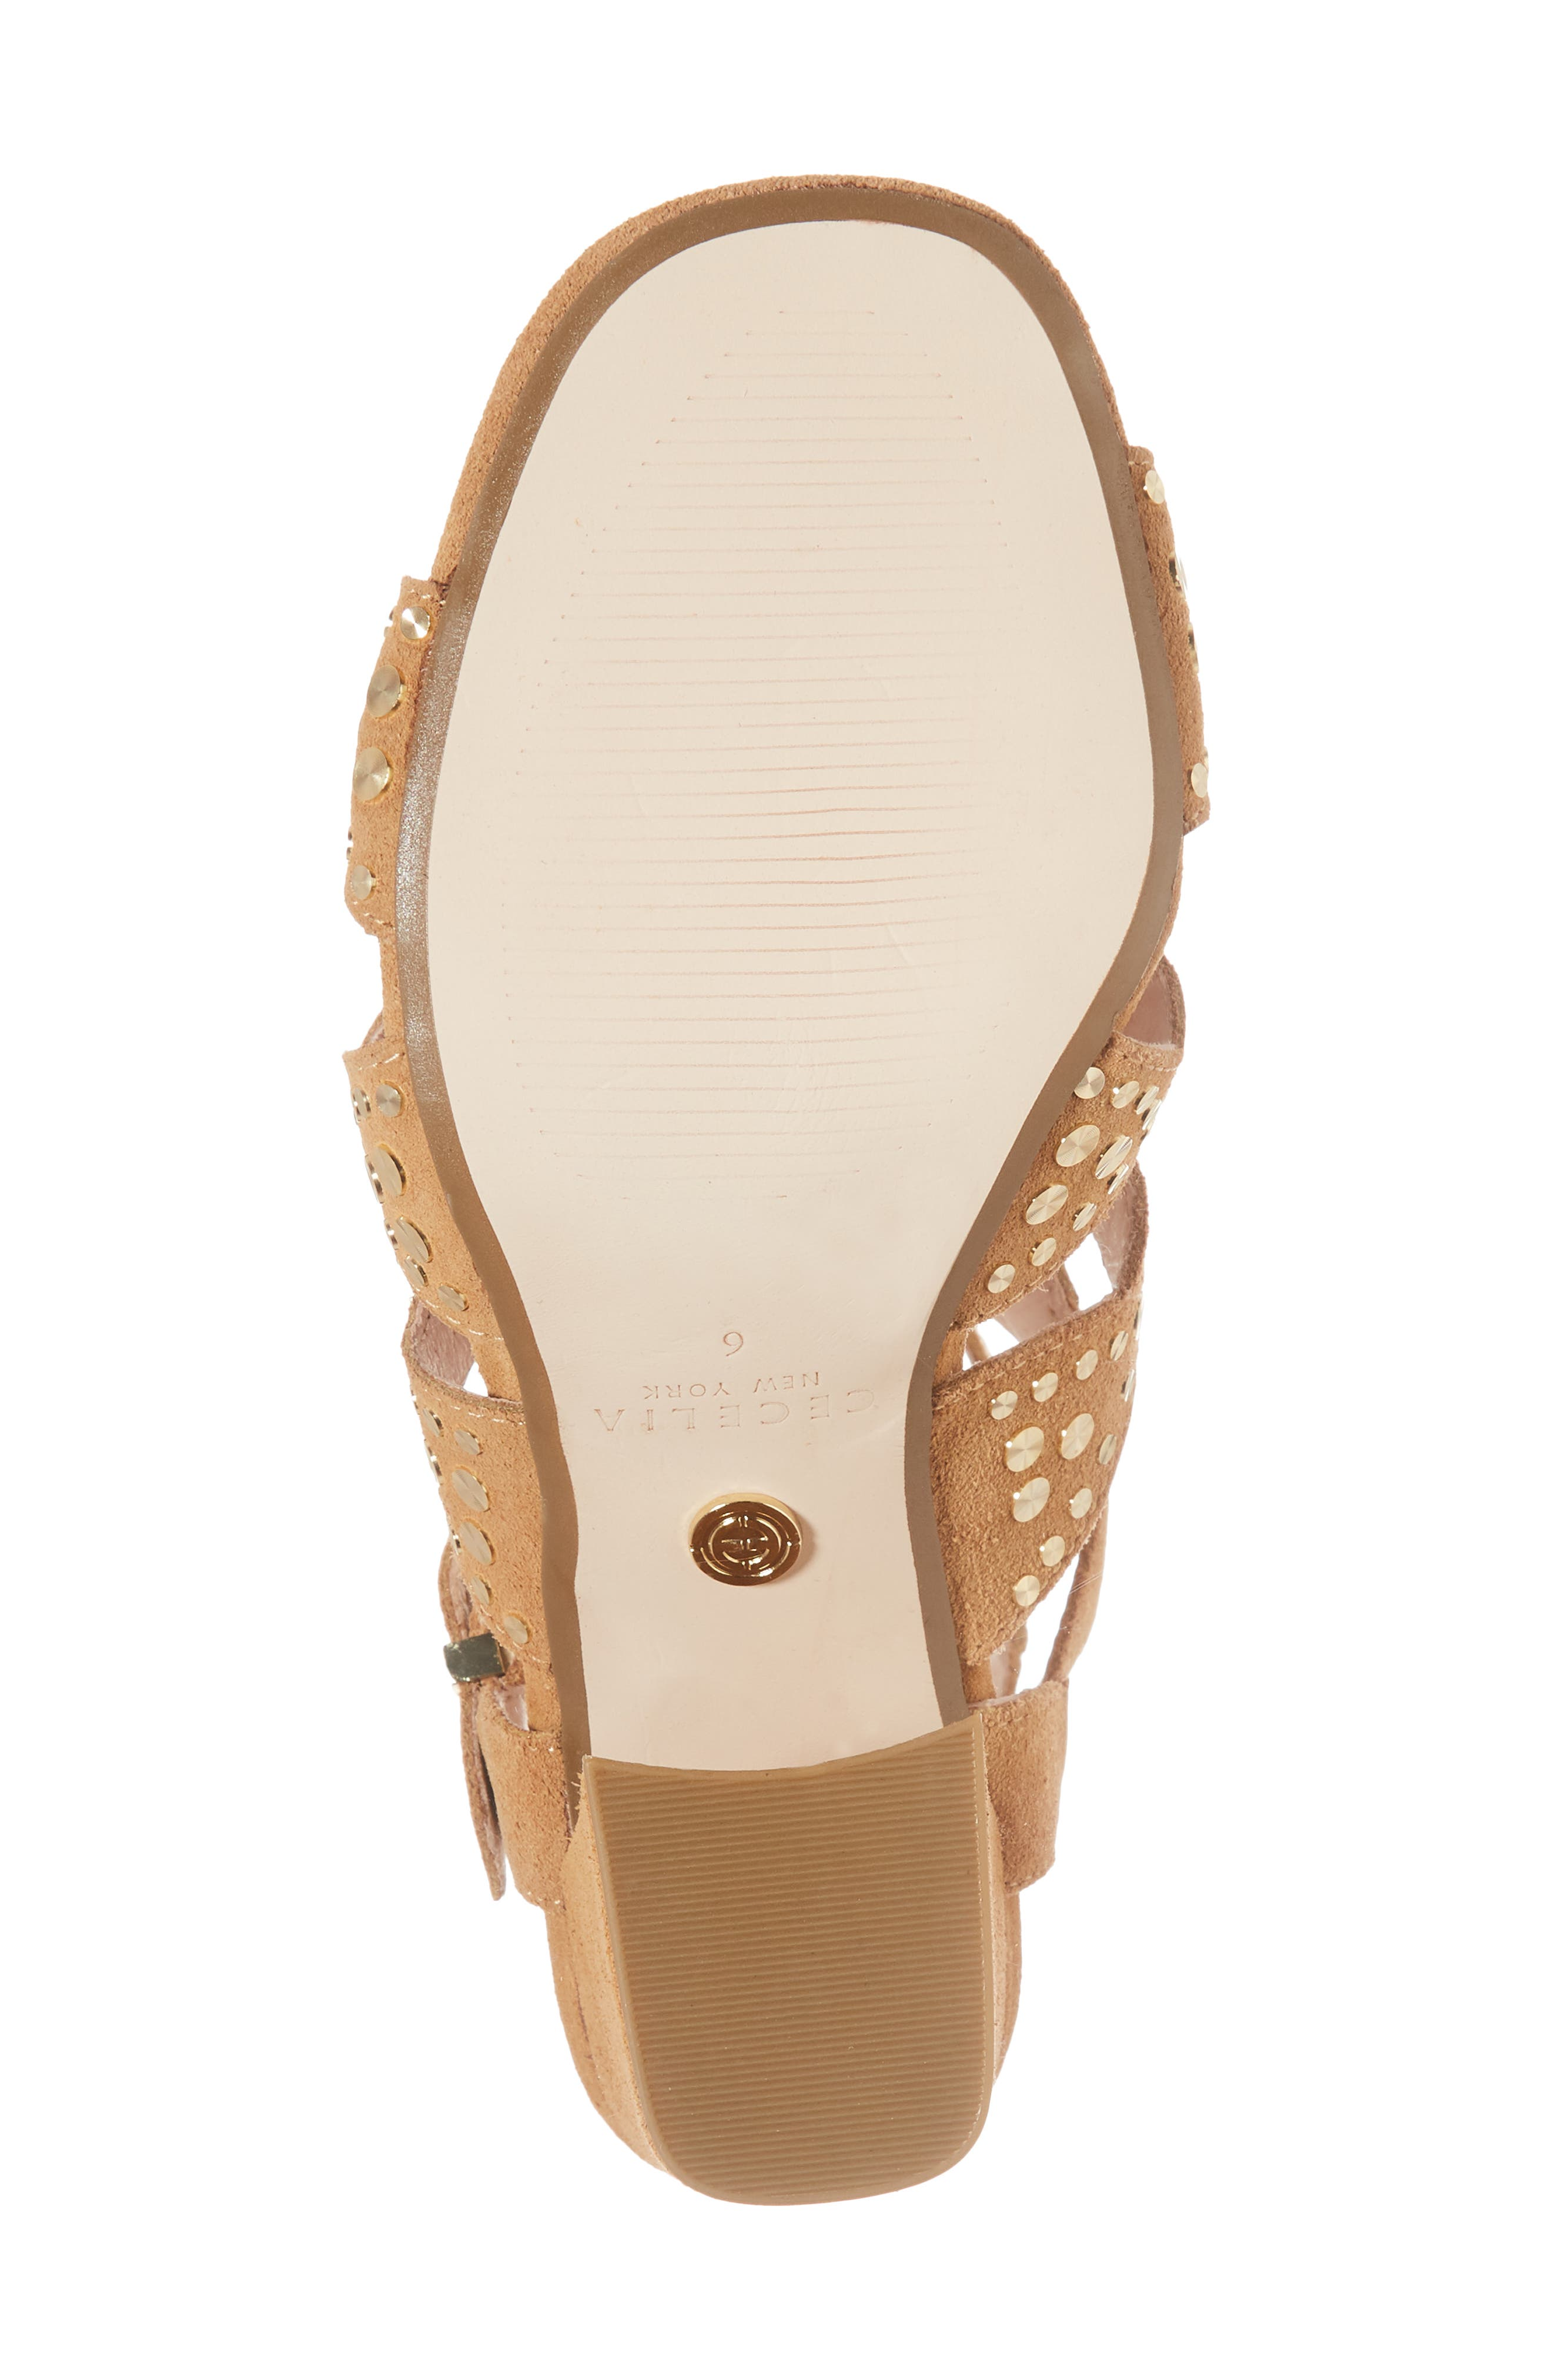 Cosmo Studded Sandal,                             Alternate thumbnail 6, color,                             SAND SUEDE